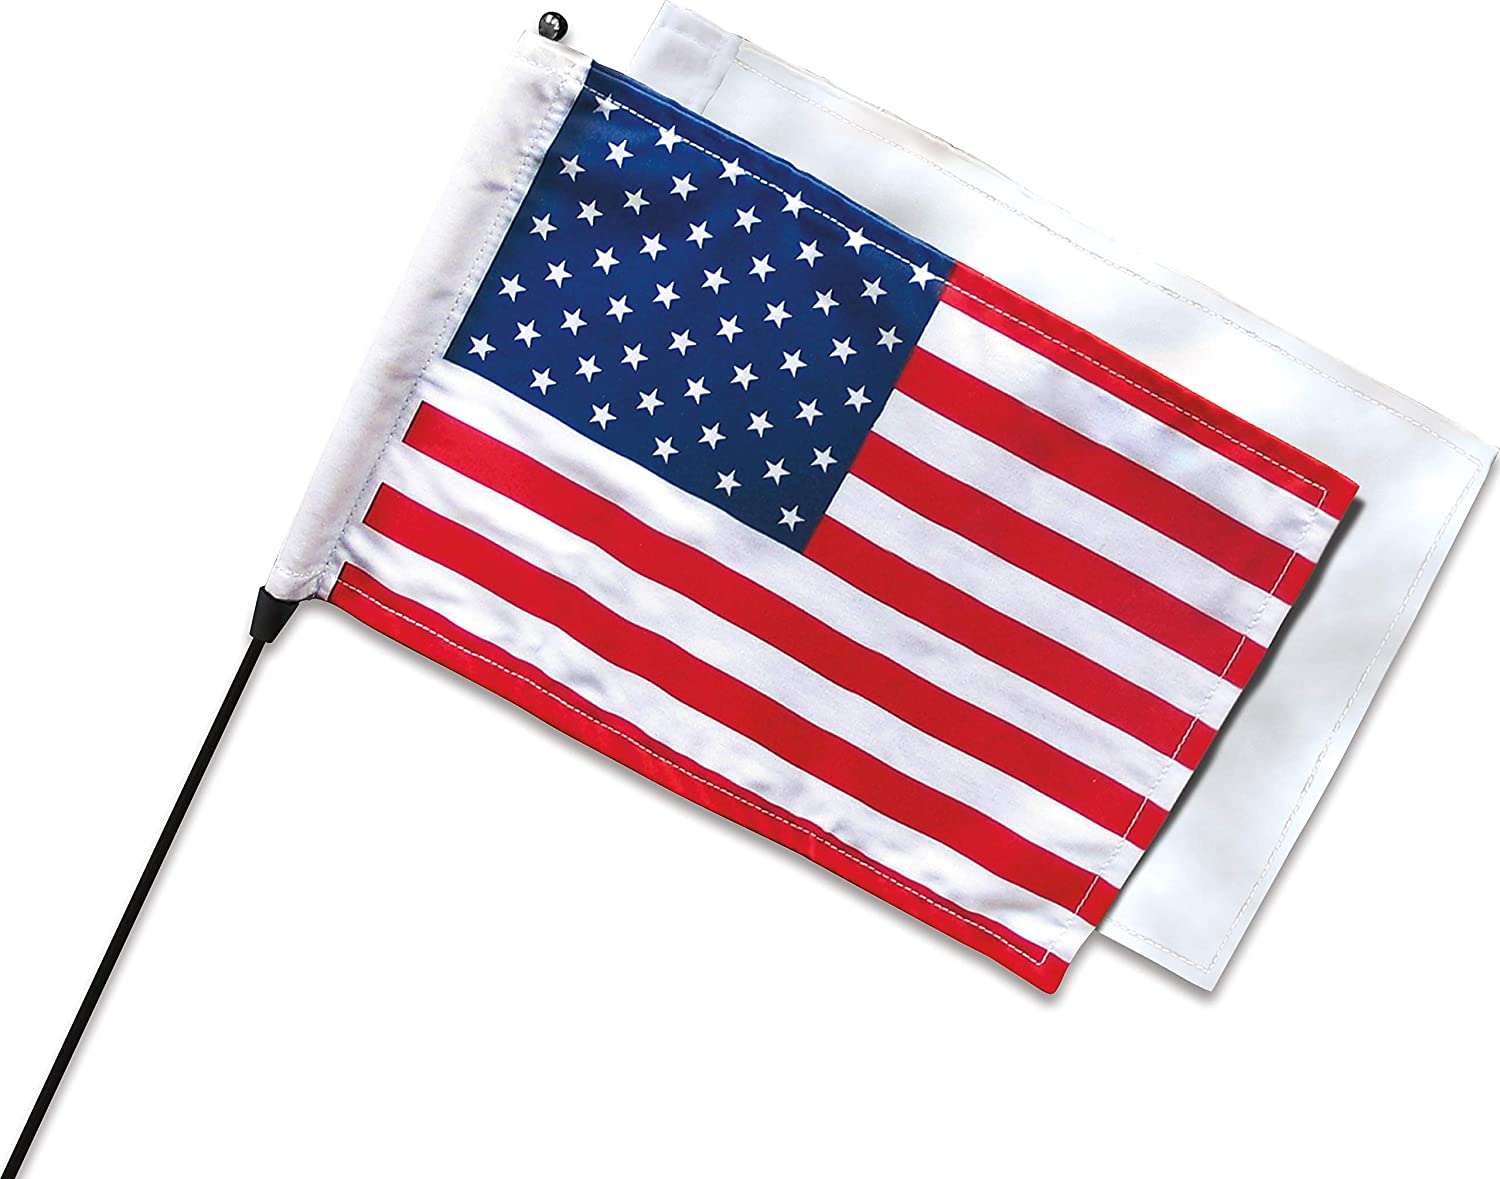 Universal Fit for Motorcycles with OEM Antennas Antenna Mount with American Flag and Plain White//Blank Flag Kuryakyn 4217 Motorcycle Display Accessory